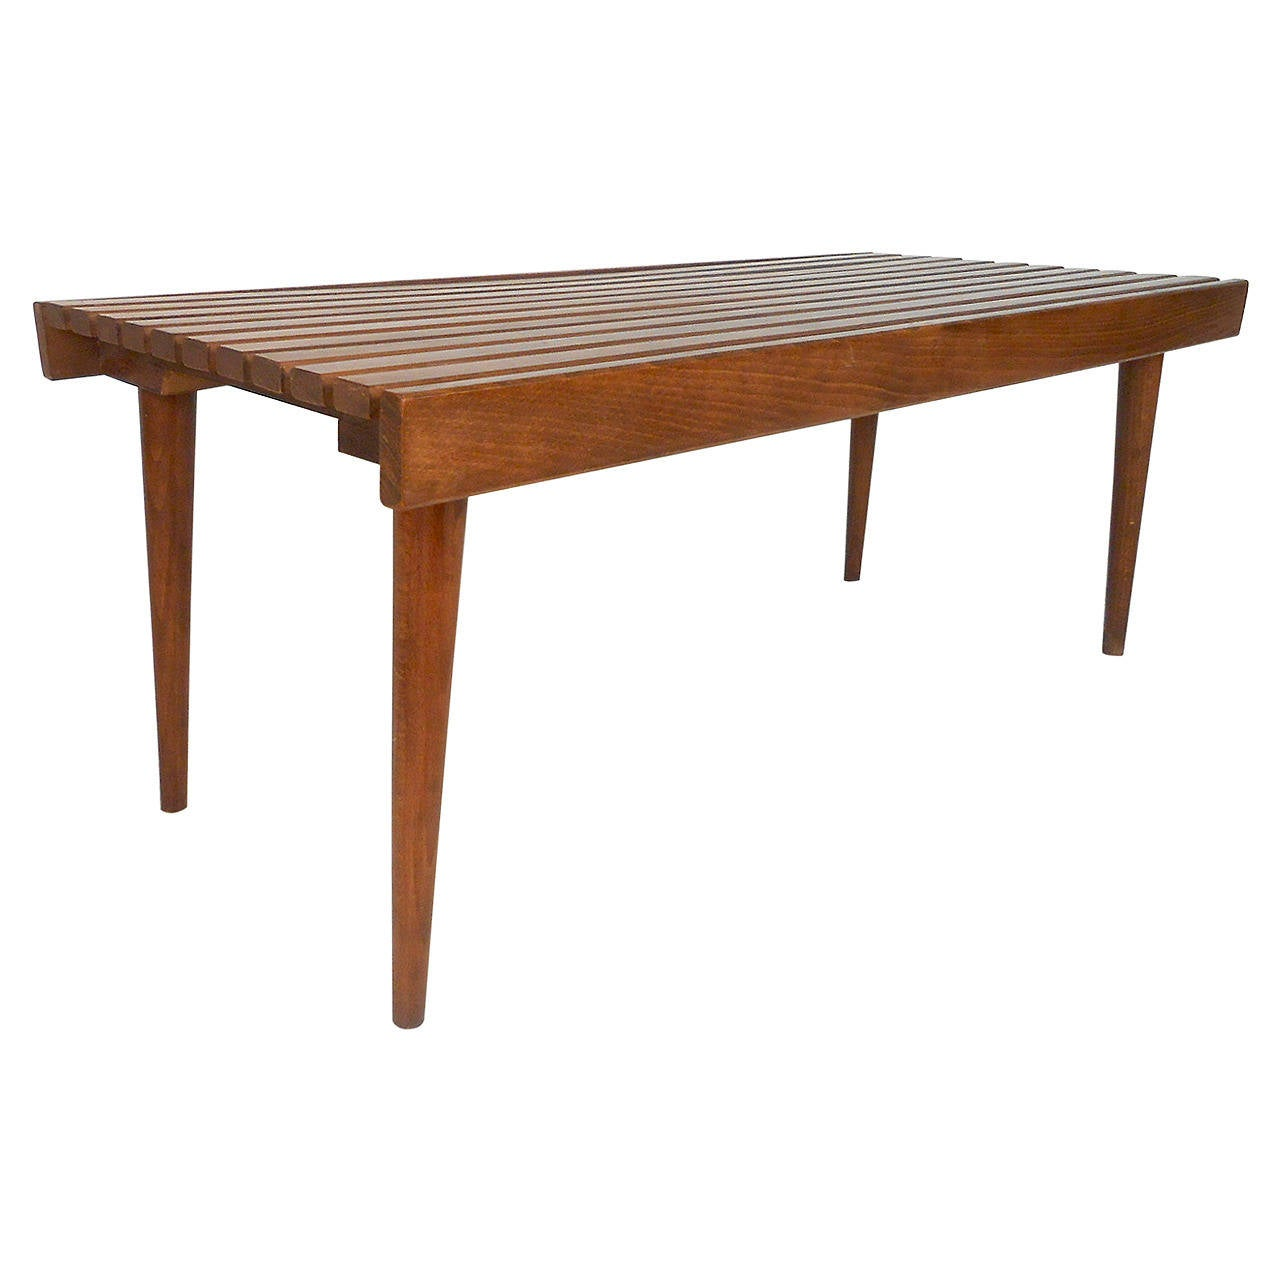 Mid Century Solid Wood Small Platform Slat Bench Or Coffee: Mid Century Modern George Nelson Style Slat Bench At 1stdibs